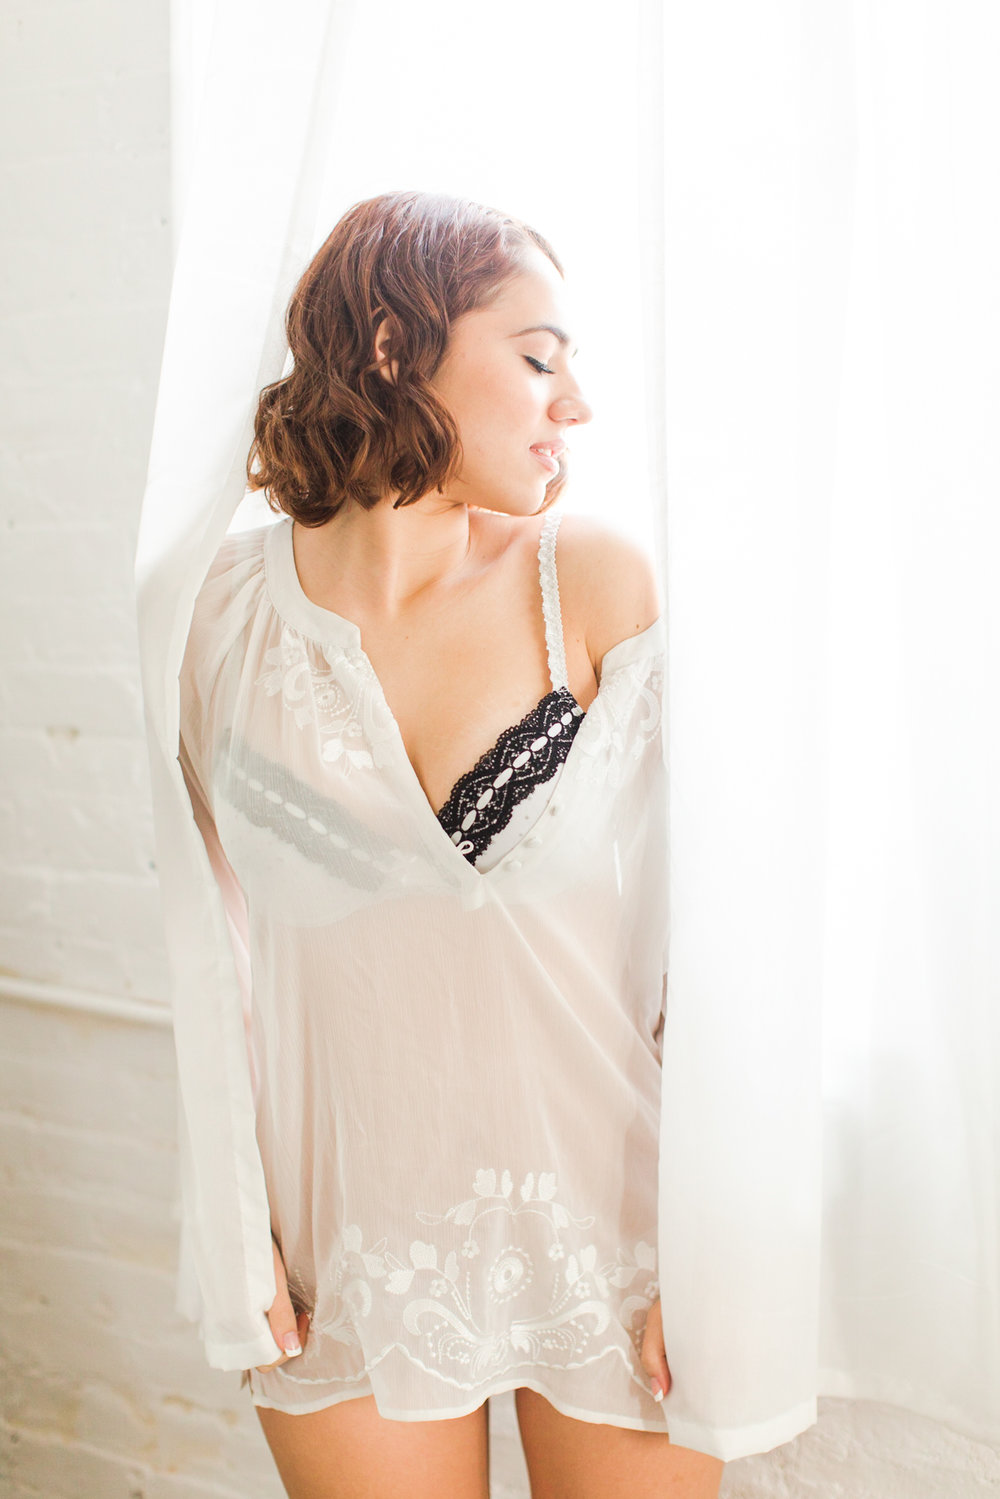 Bridal Boudoir - Shaina Lee Photography WEB-112.jpg